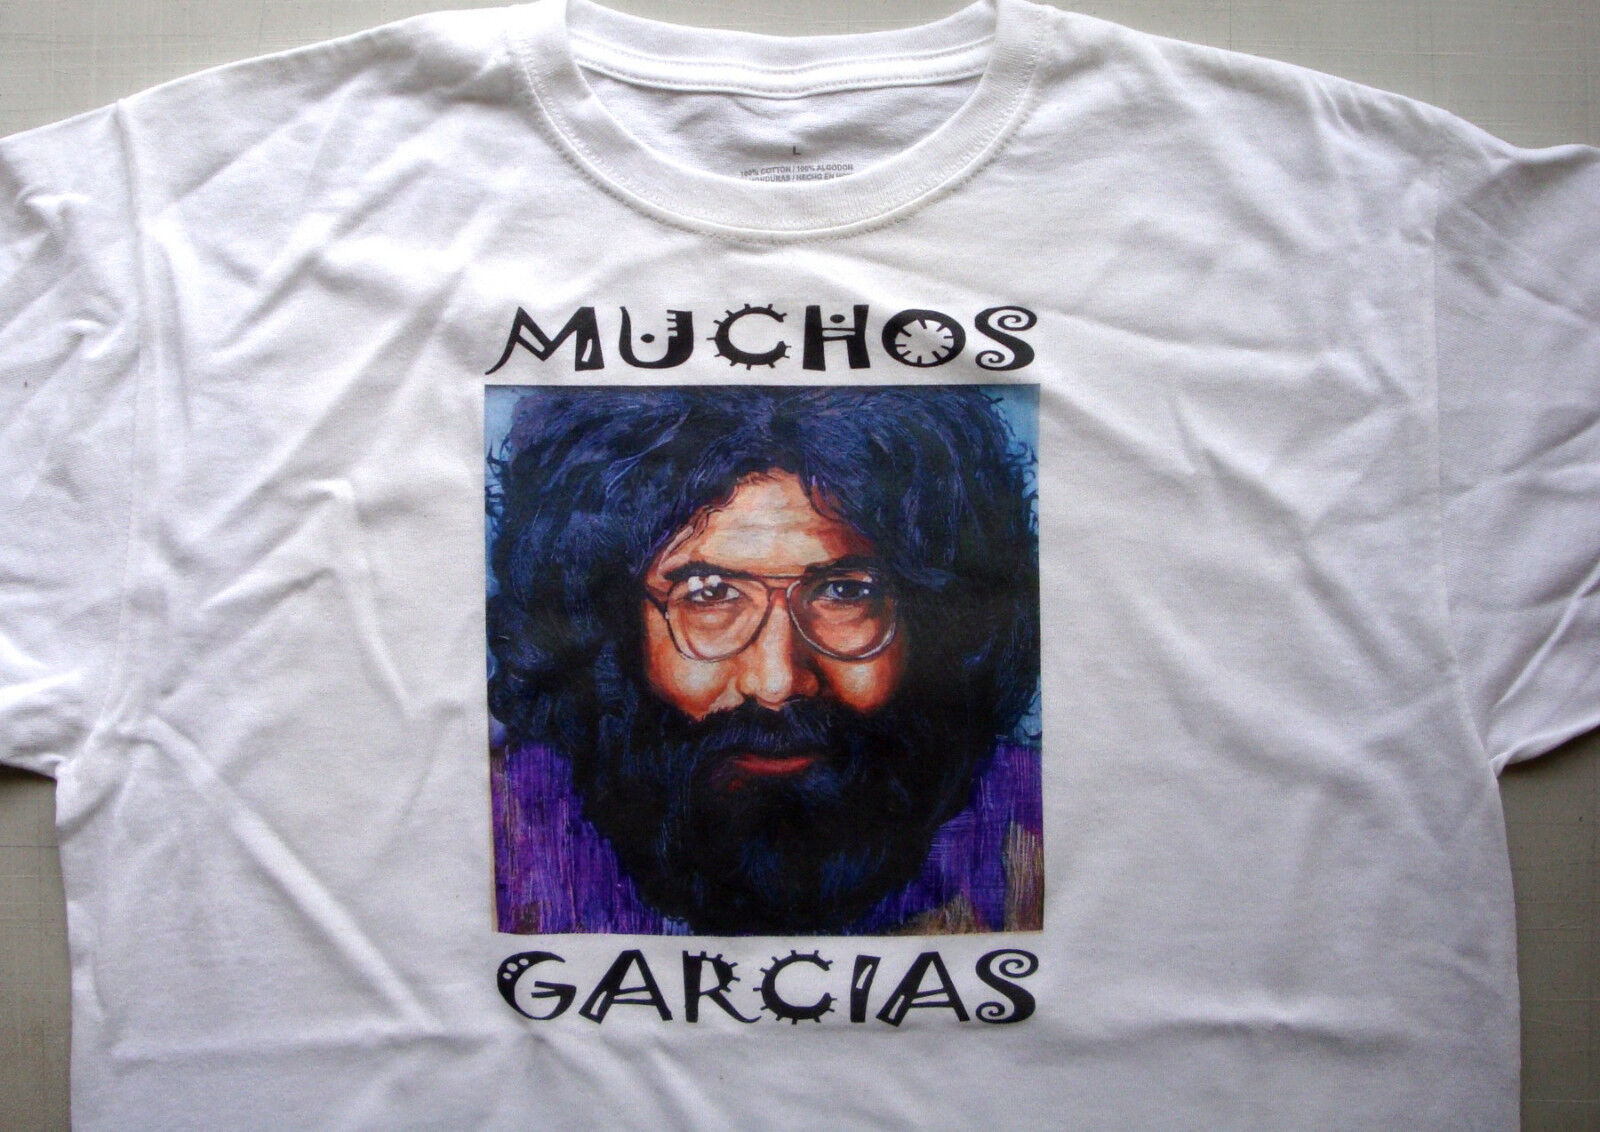 T-shirt white 100% cotton size XL Jerry Garcia Grateful dead muchos garcias